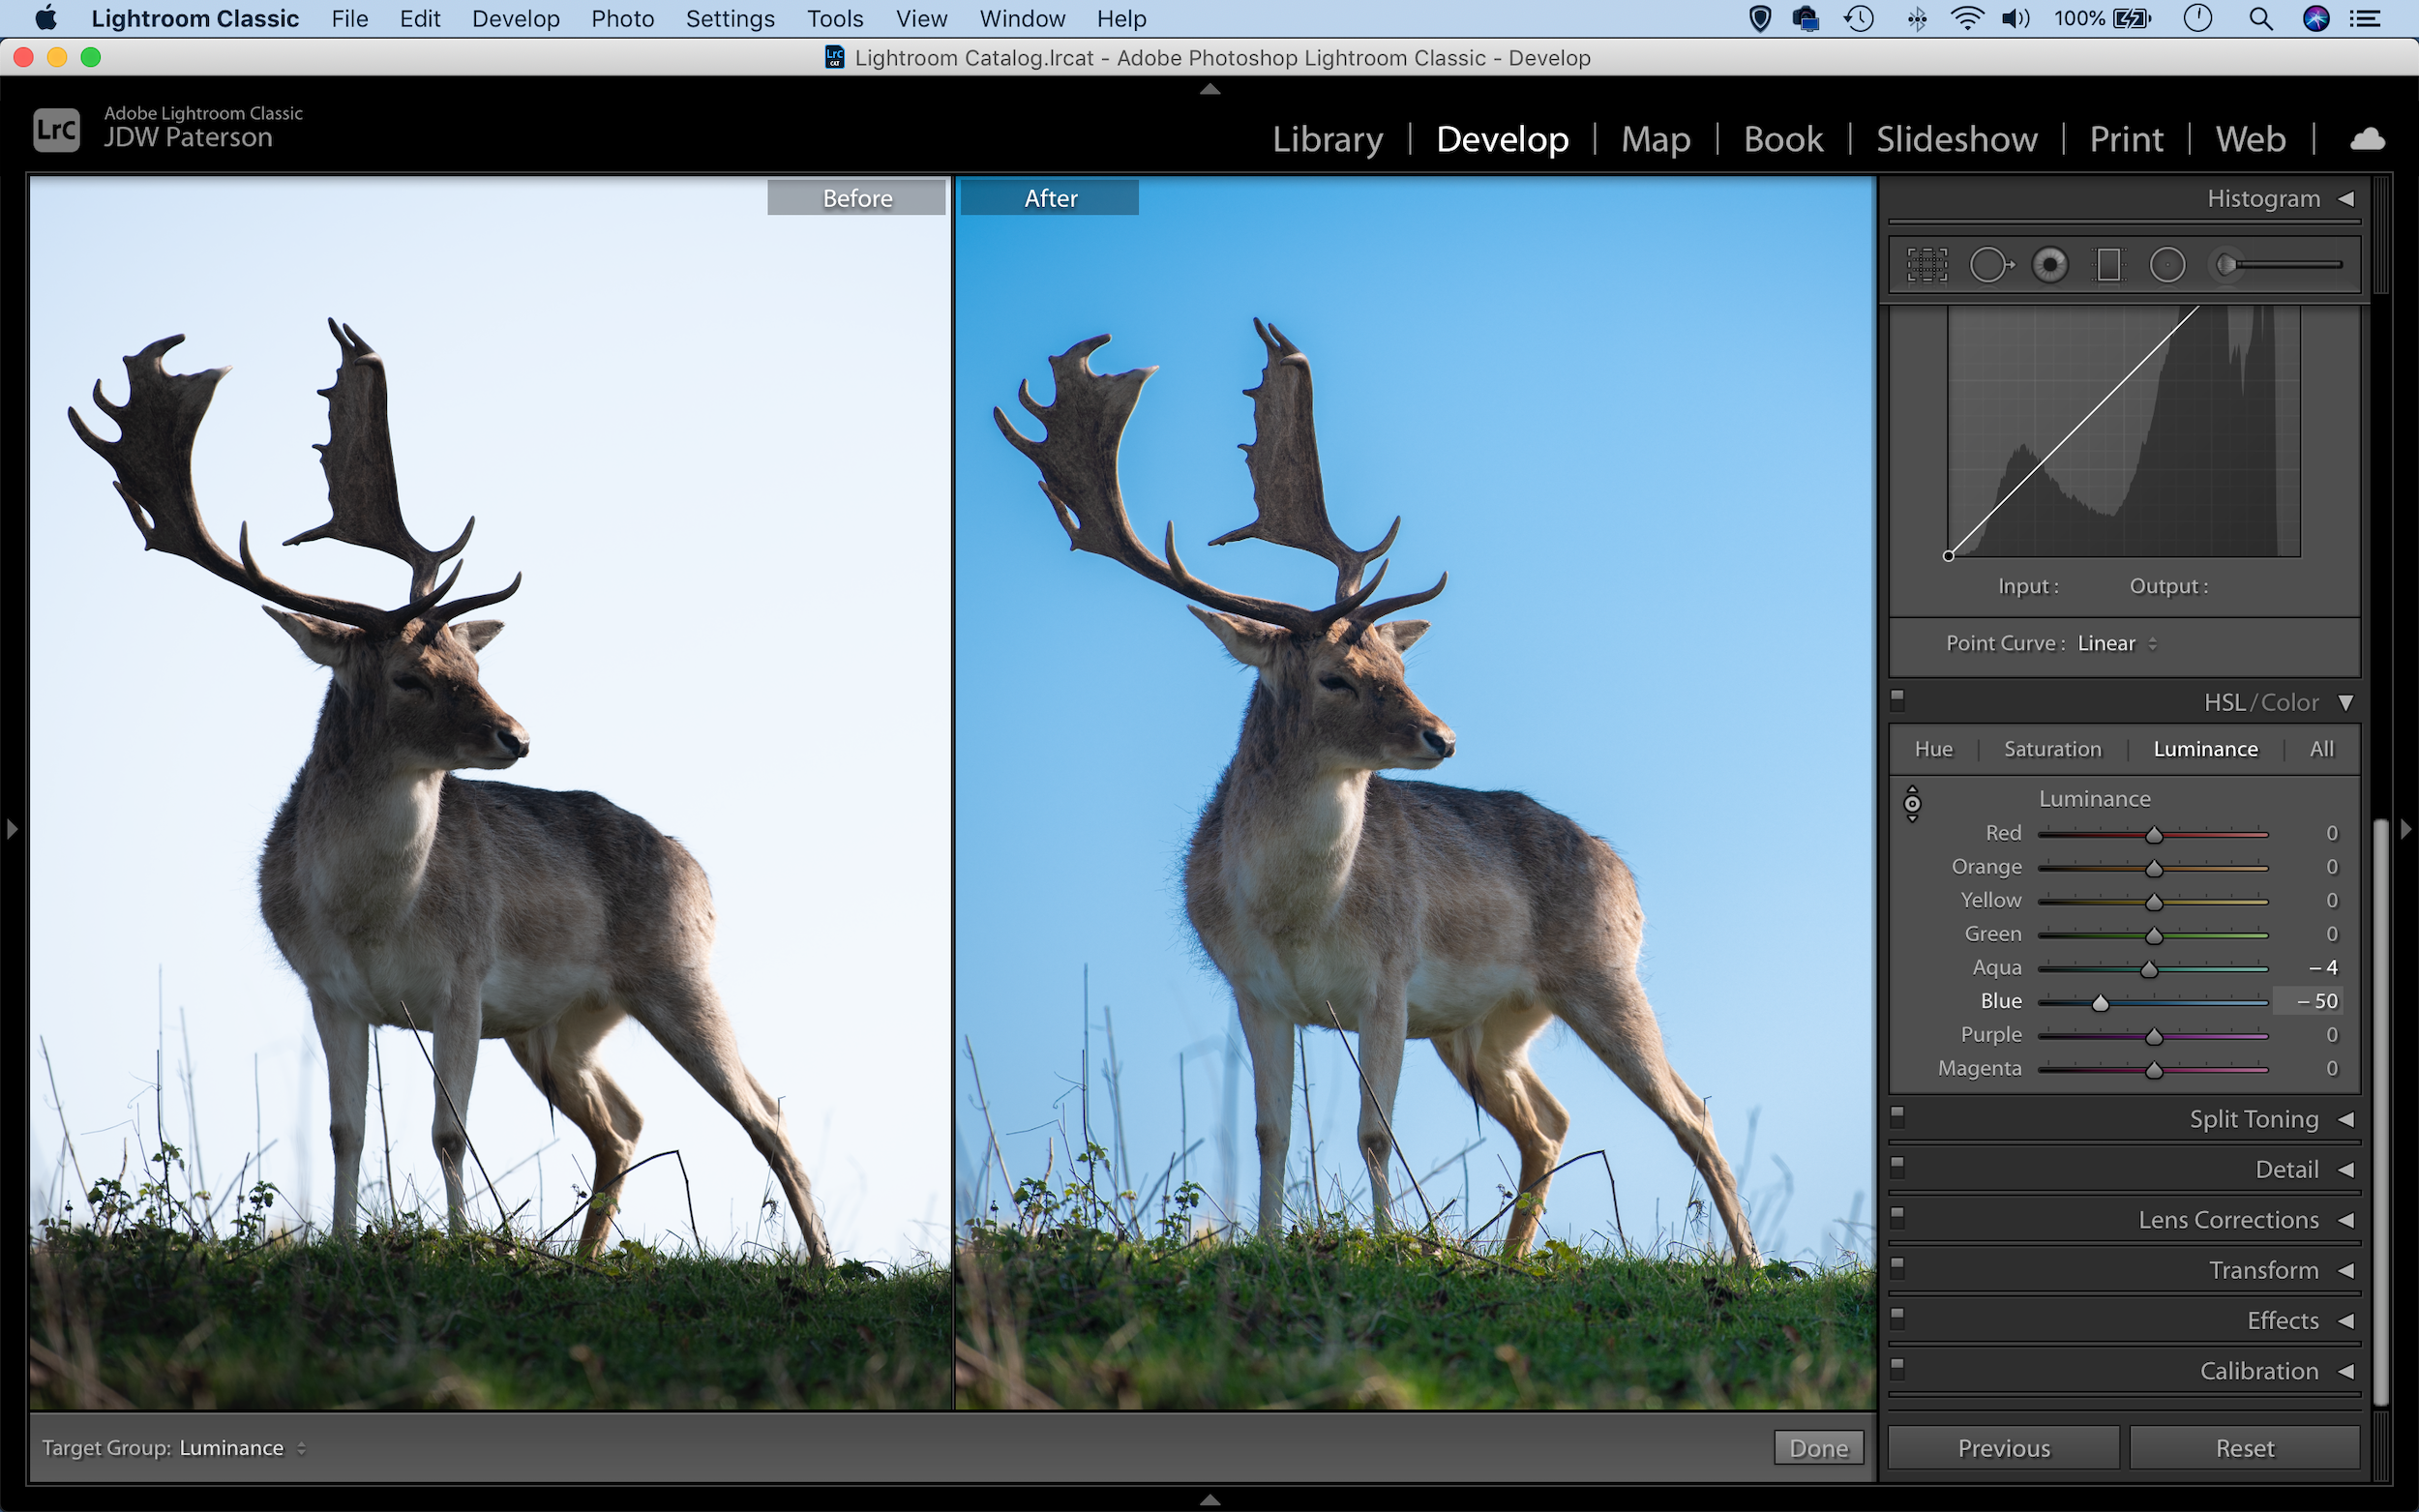 The HSL panel in Adobe Lightroom with a before and after comparison